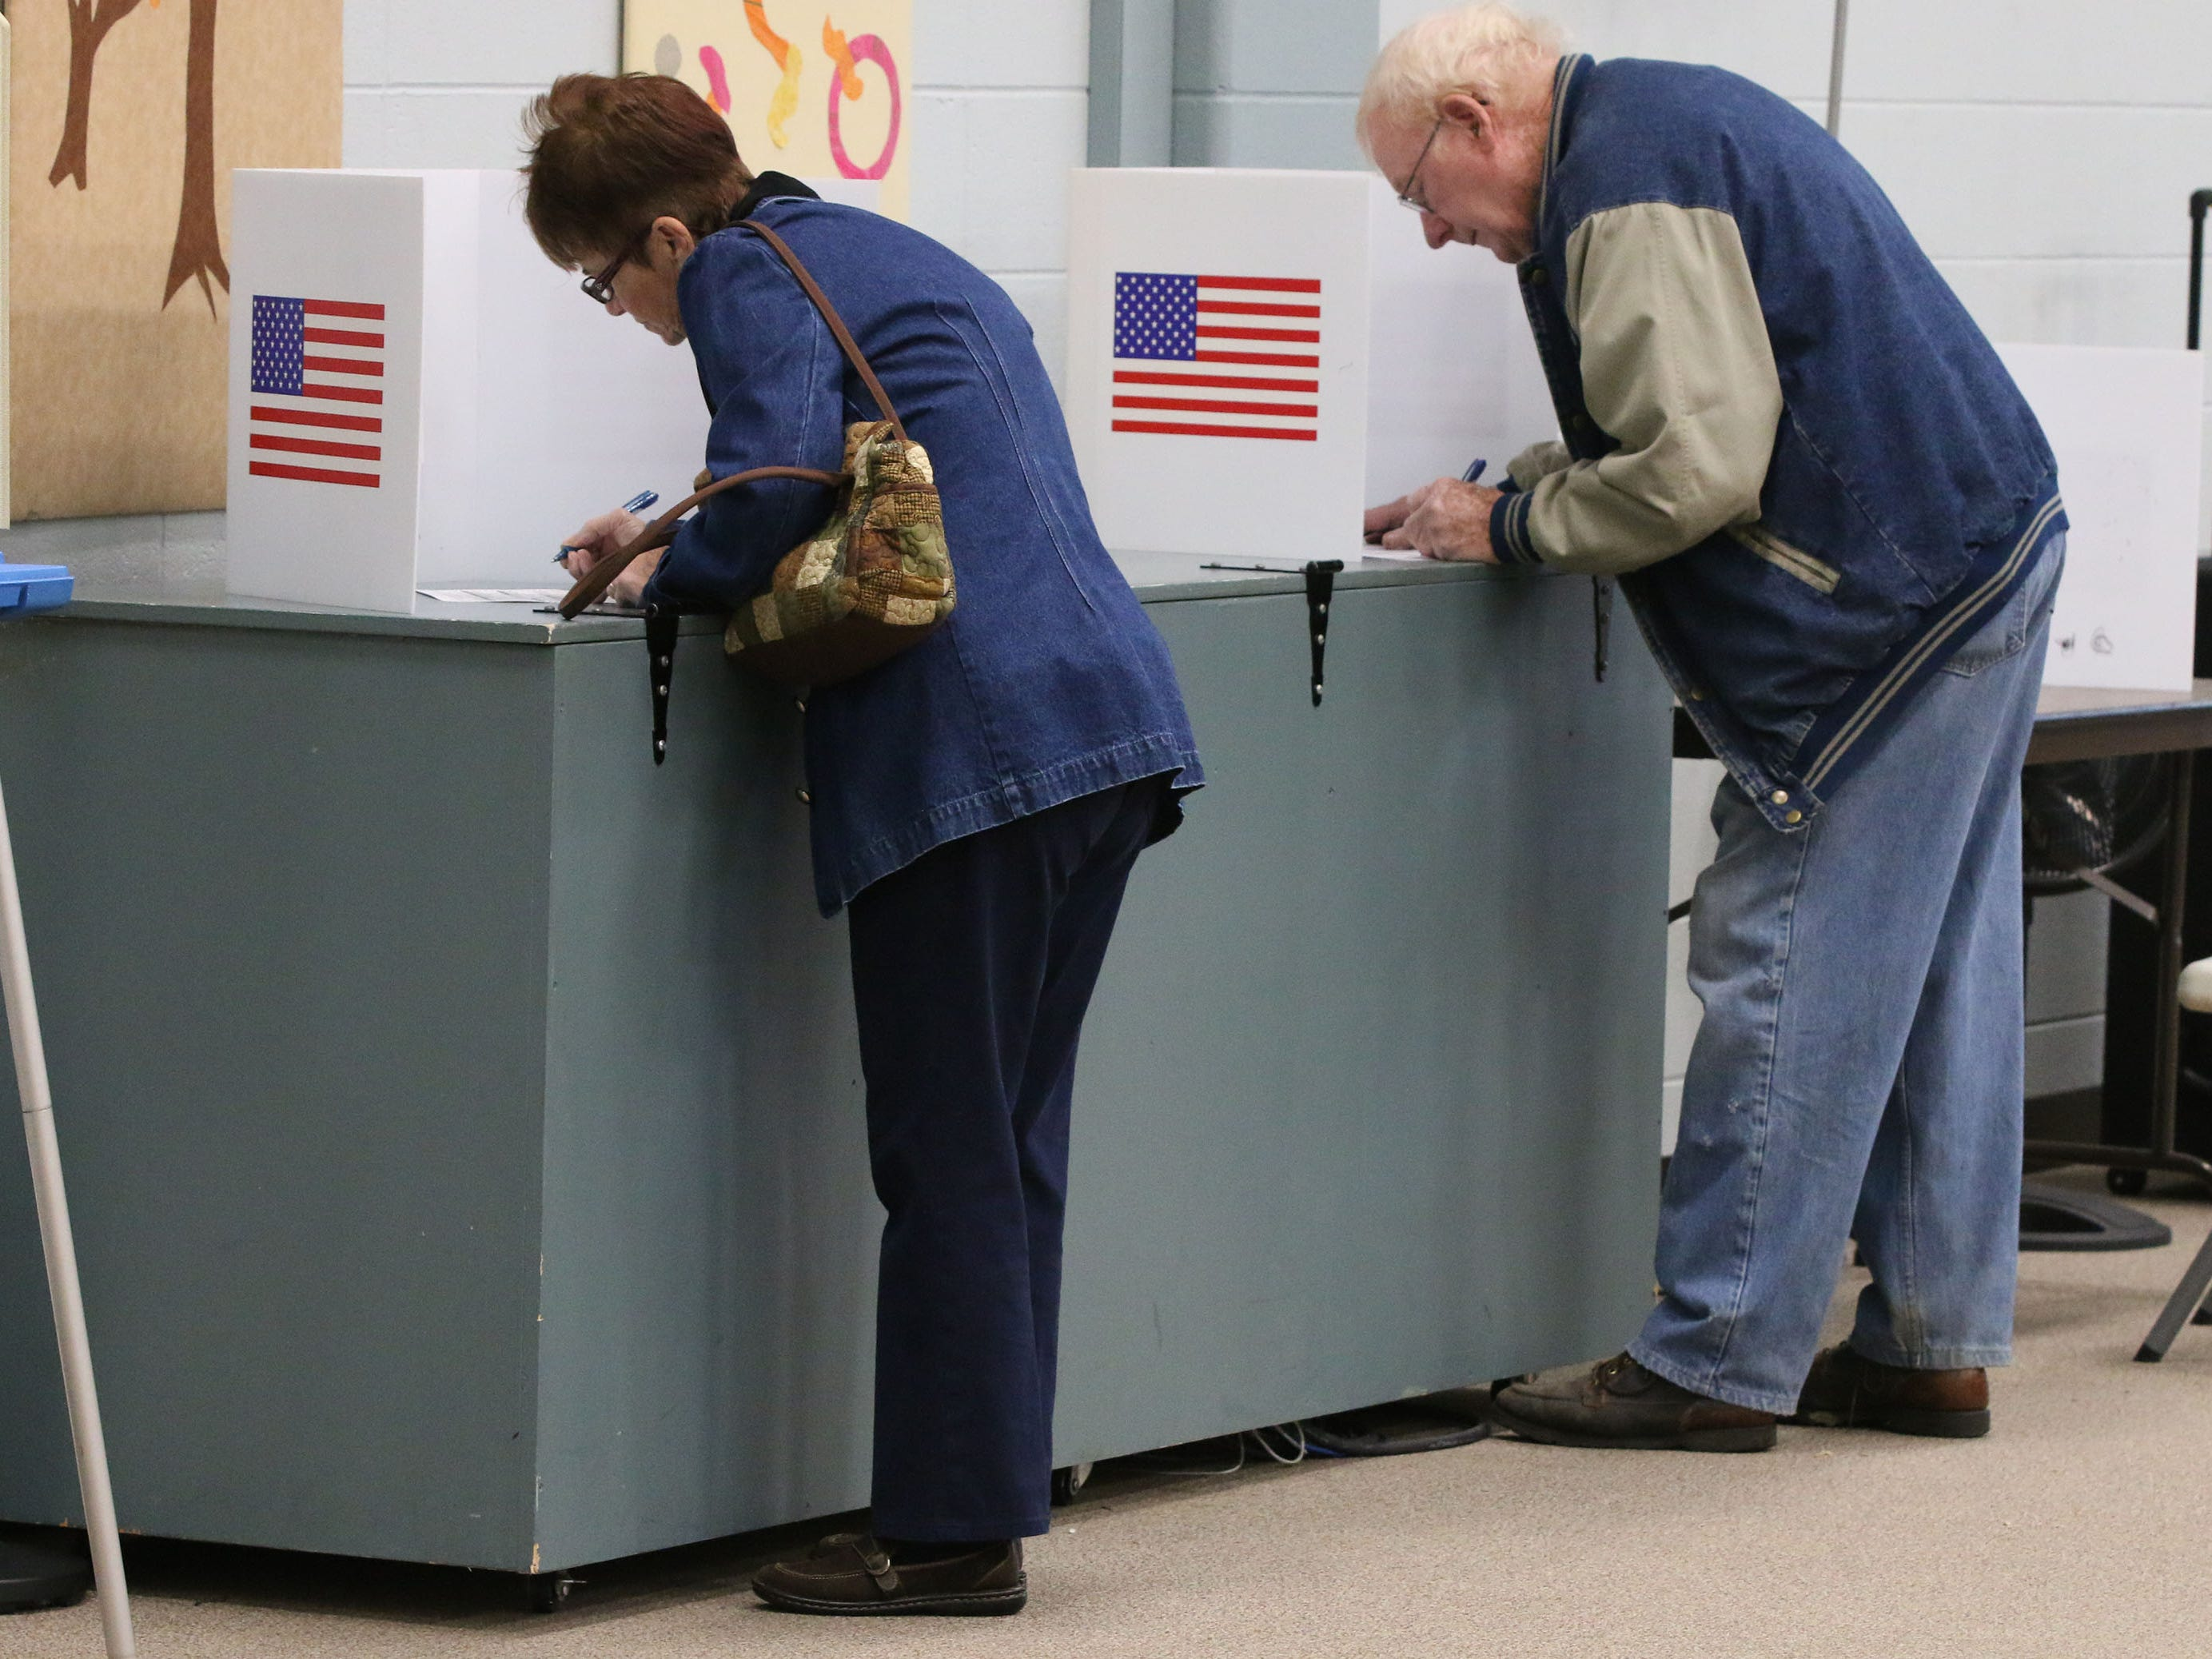 Voters cast their ballots at Bethany Reformed Church, Tuesday, November 6, 2018, in Sheboygan, Wis.